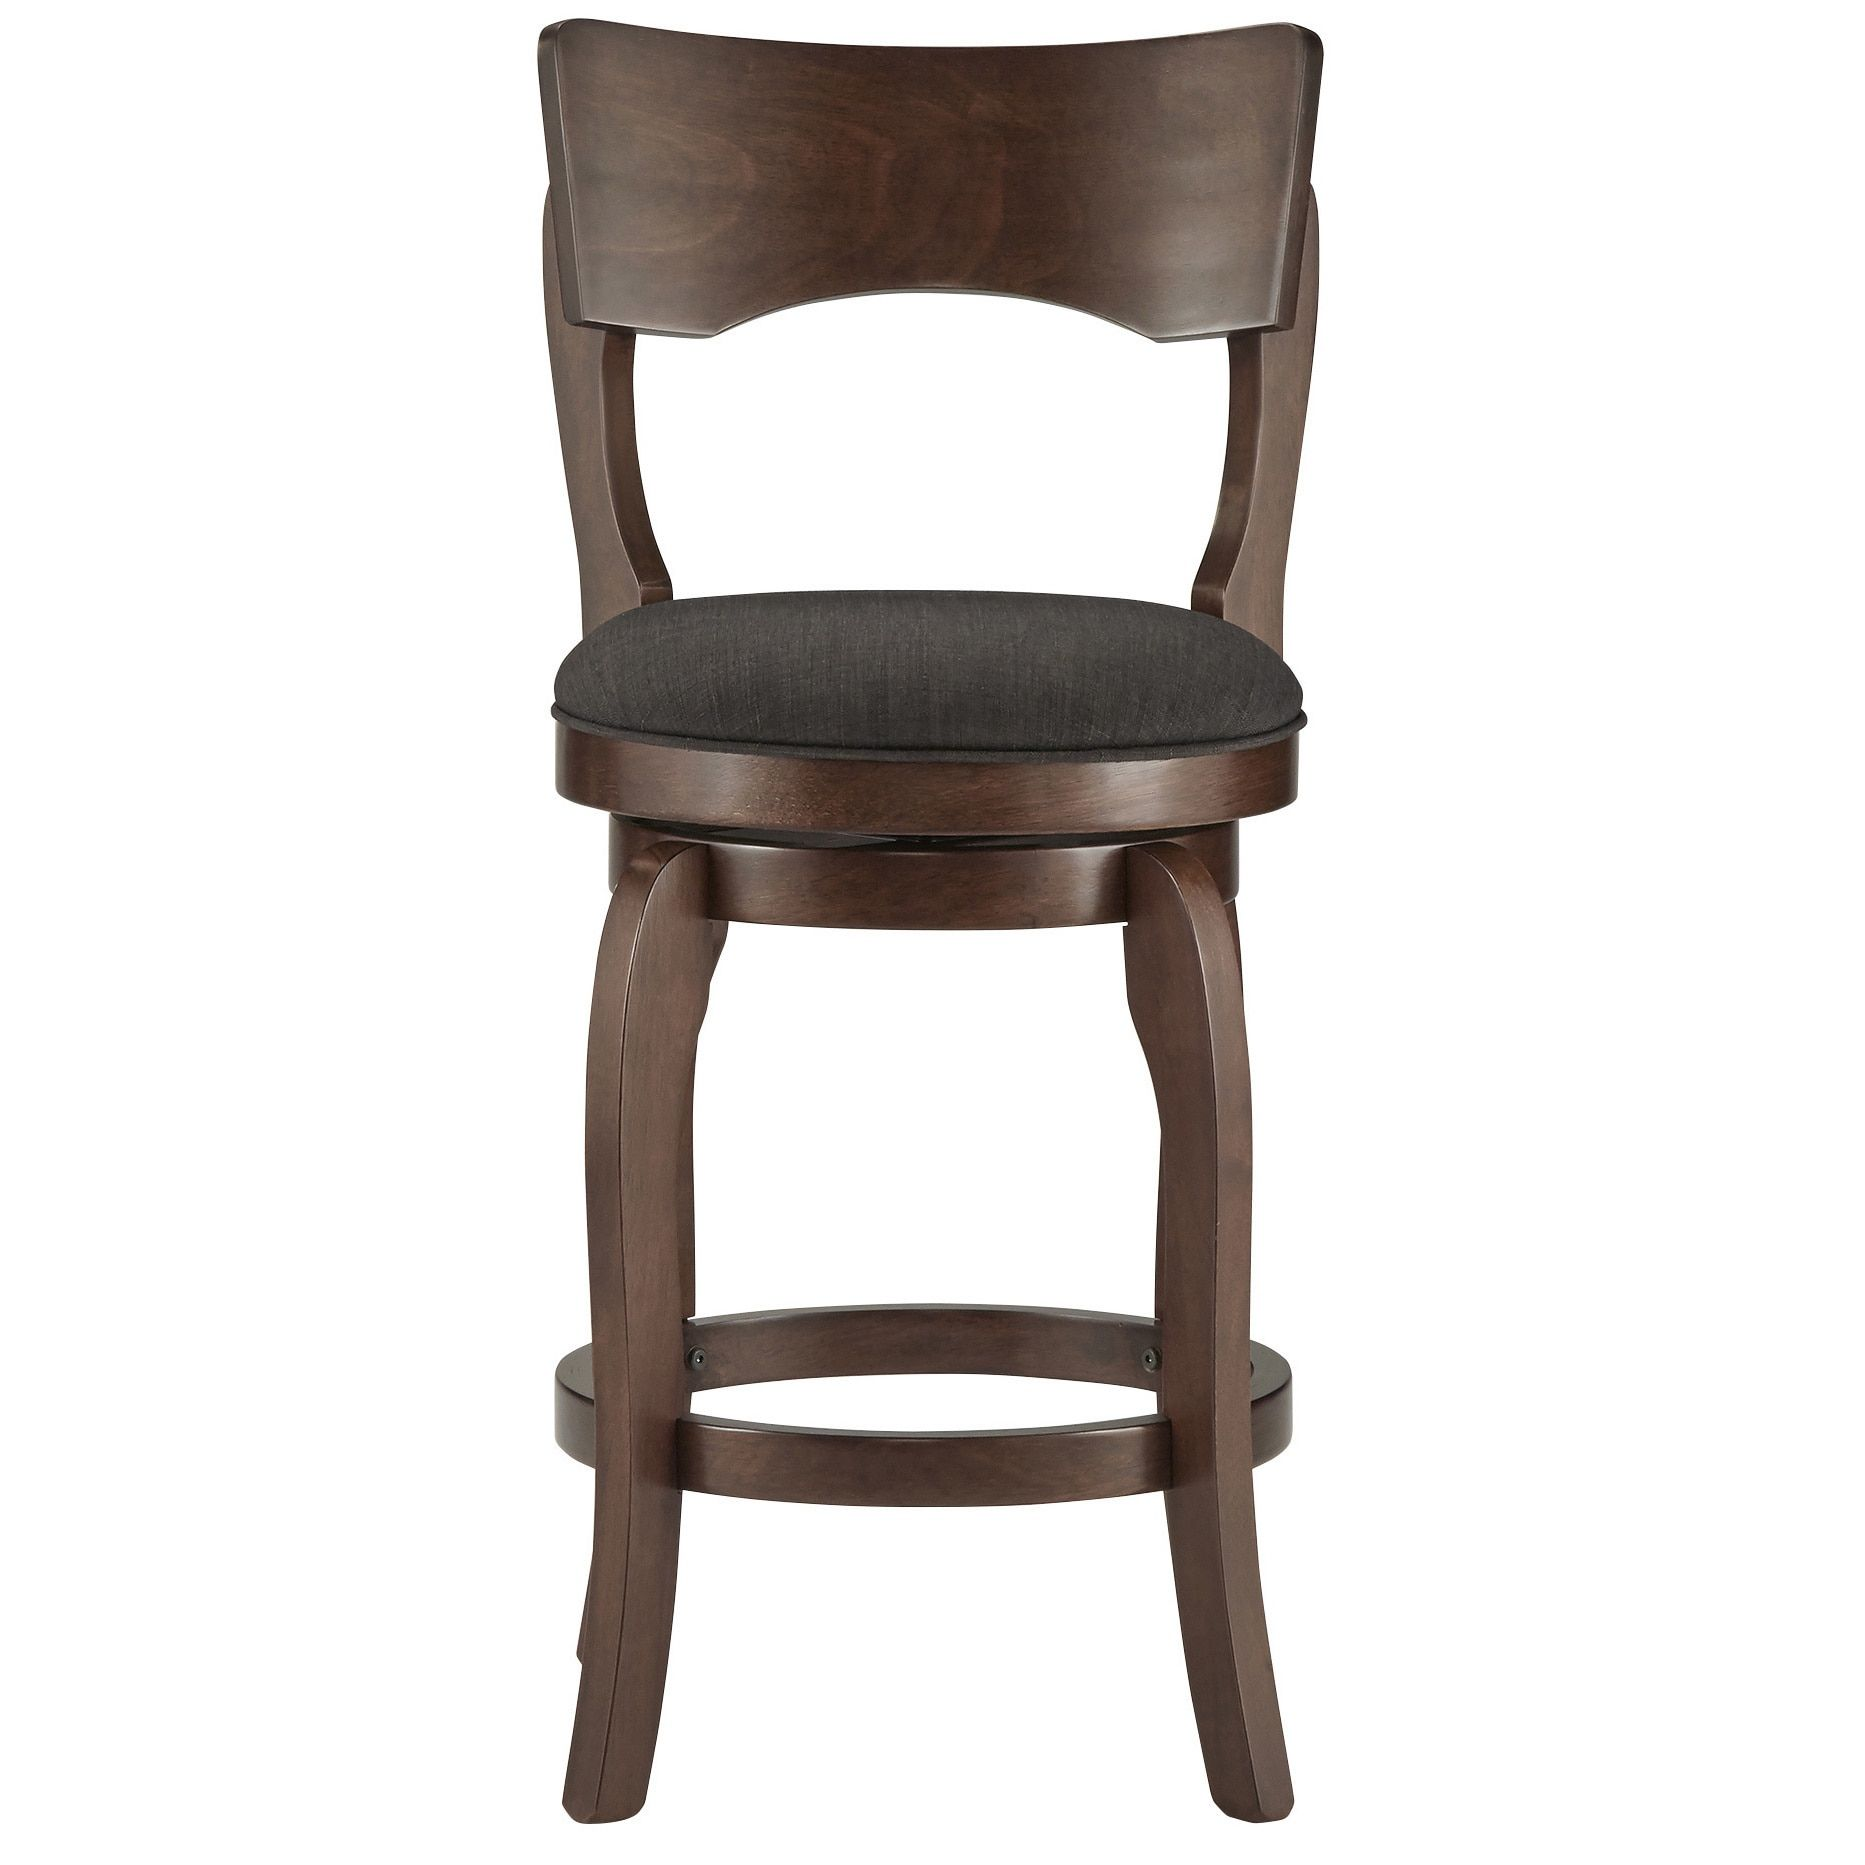 Incredible Lyla Swivel 24 Inch Brown Oak Counter Height Linen Barstool Pabps2019 Chair Design Images Pabps2019Com